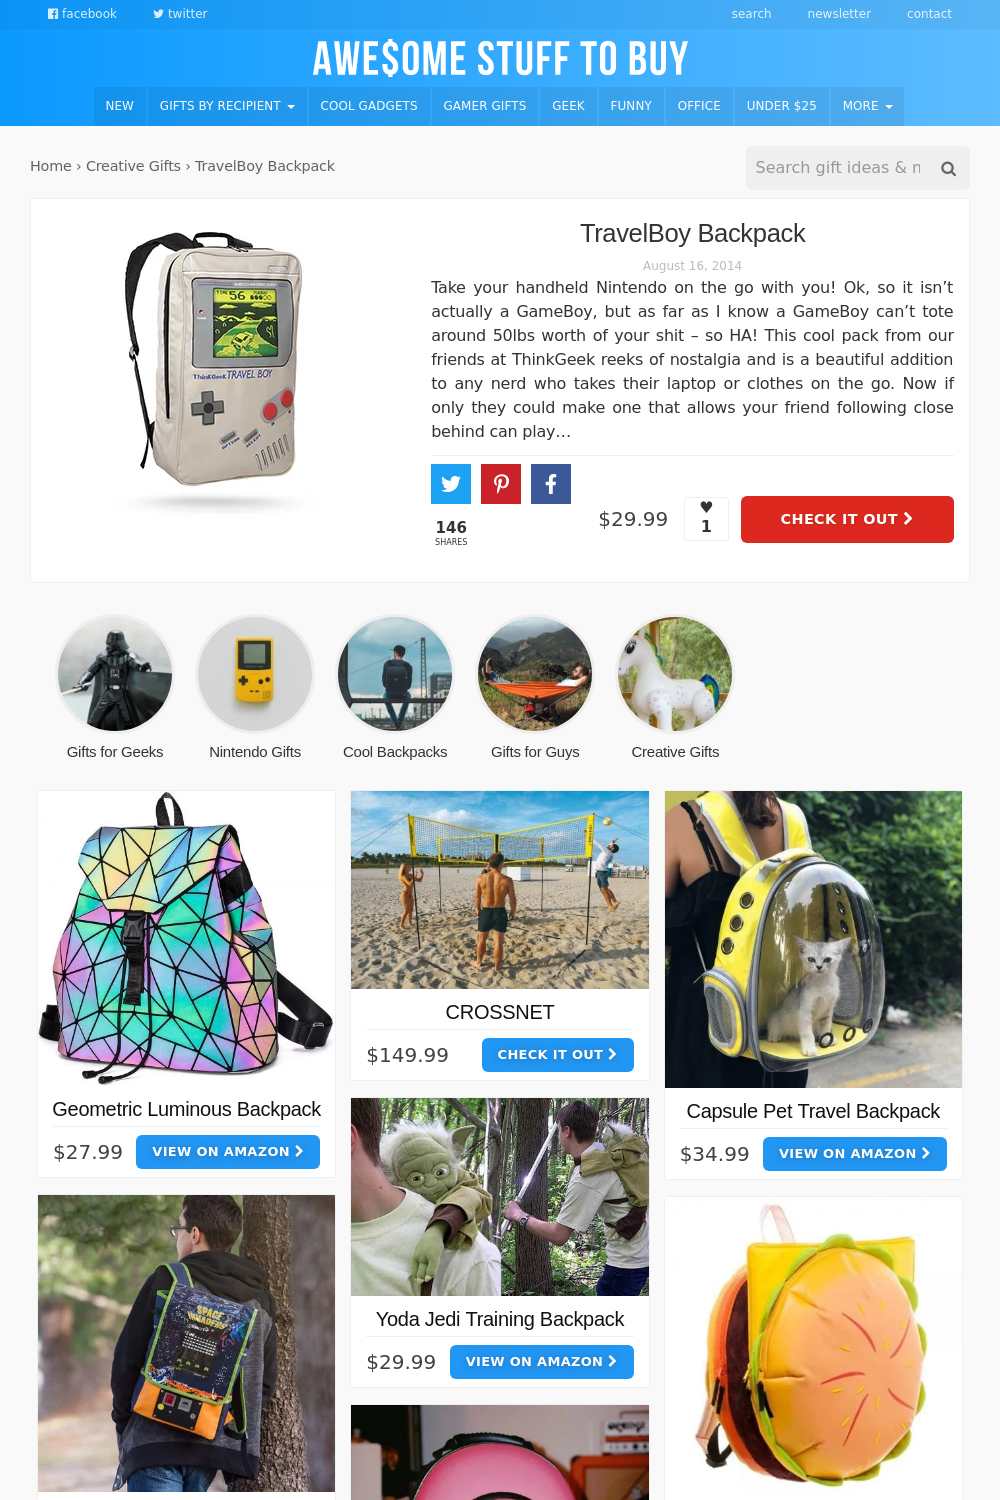 travel // Awesome Stuff to Buy